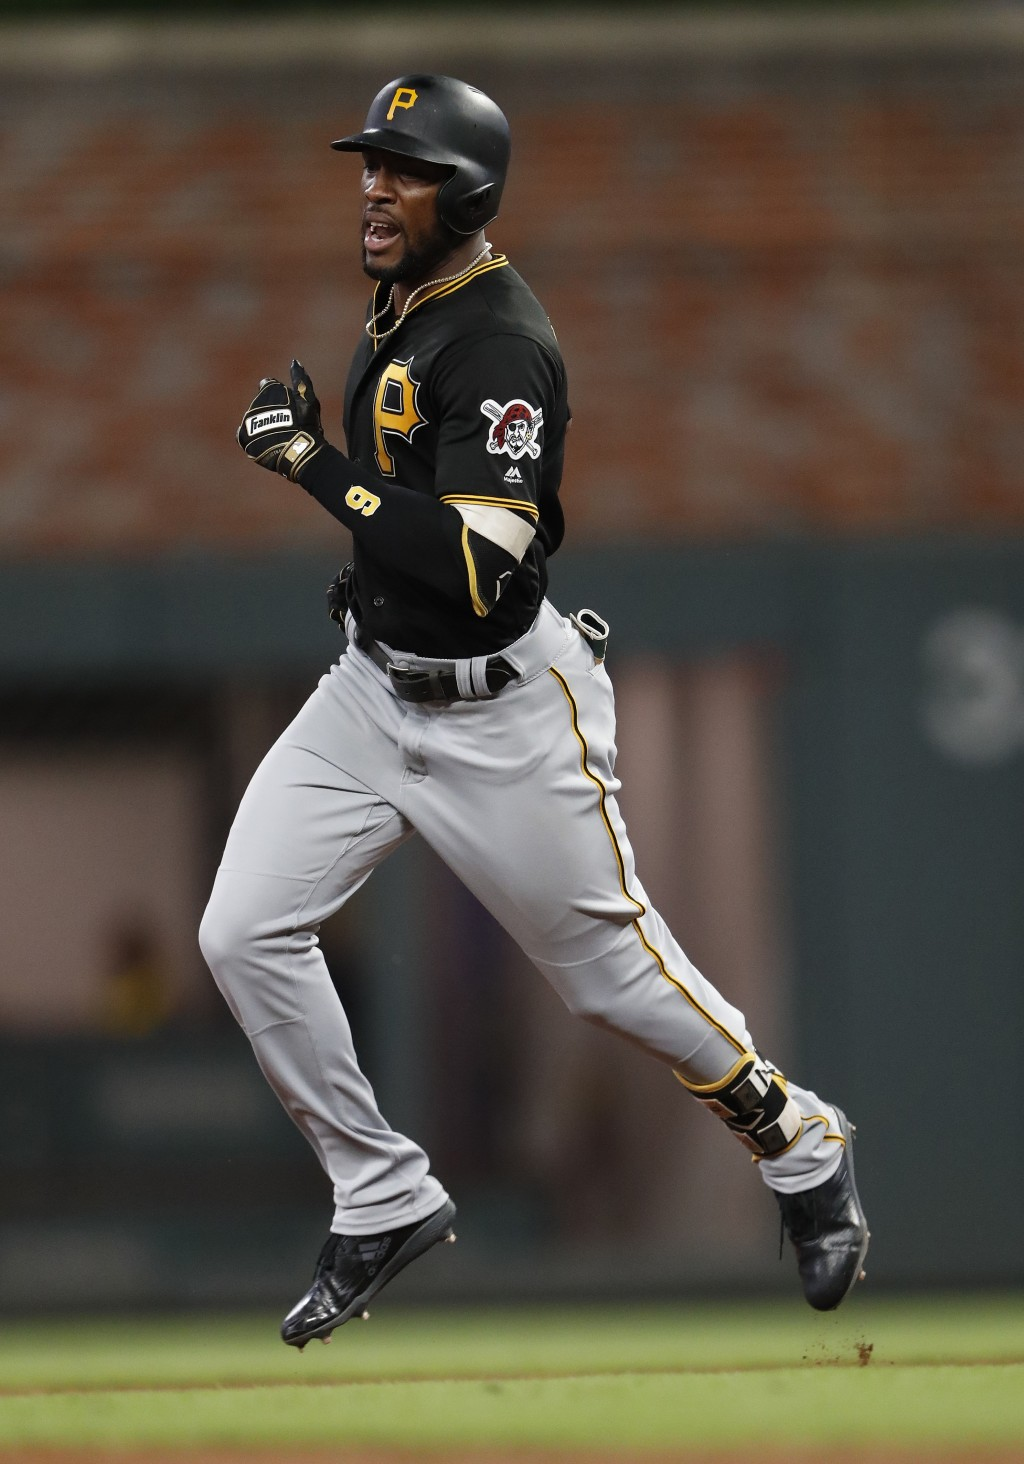 Pittsburgh Pirates' Starling Marte run the bases after hitting a solo home run in the fifth inning of the team's baseball game the Atlanta Braves on W...